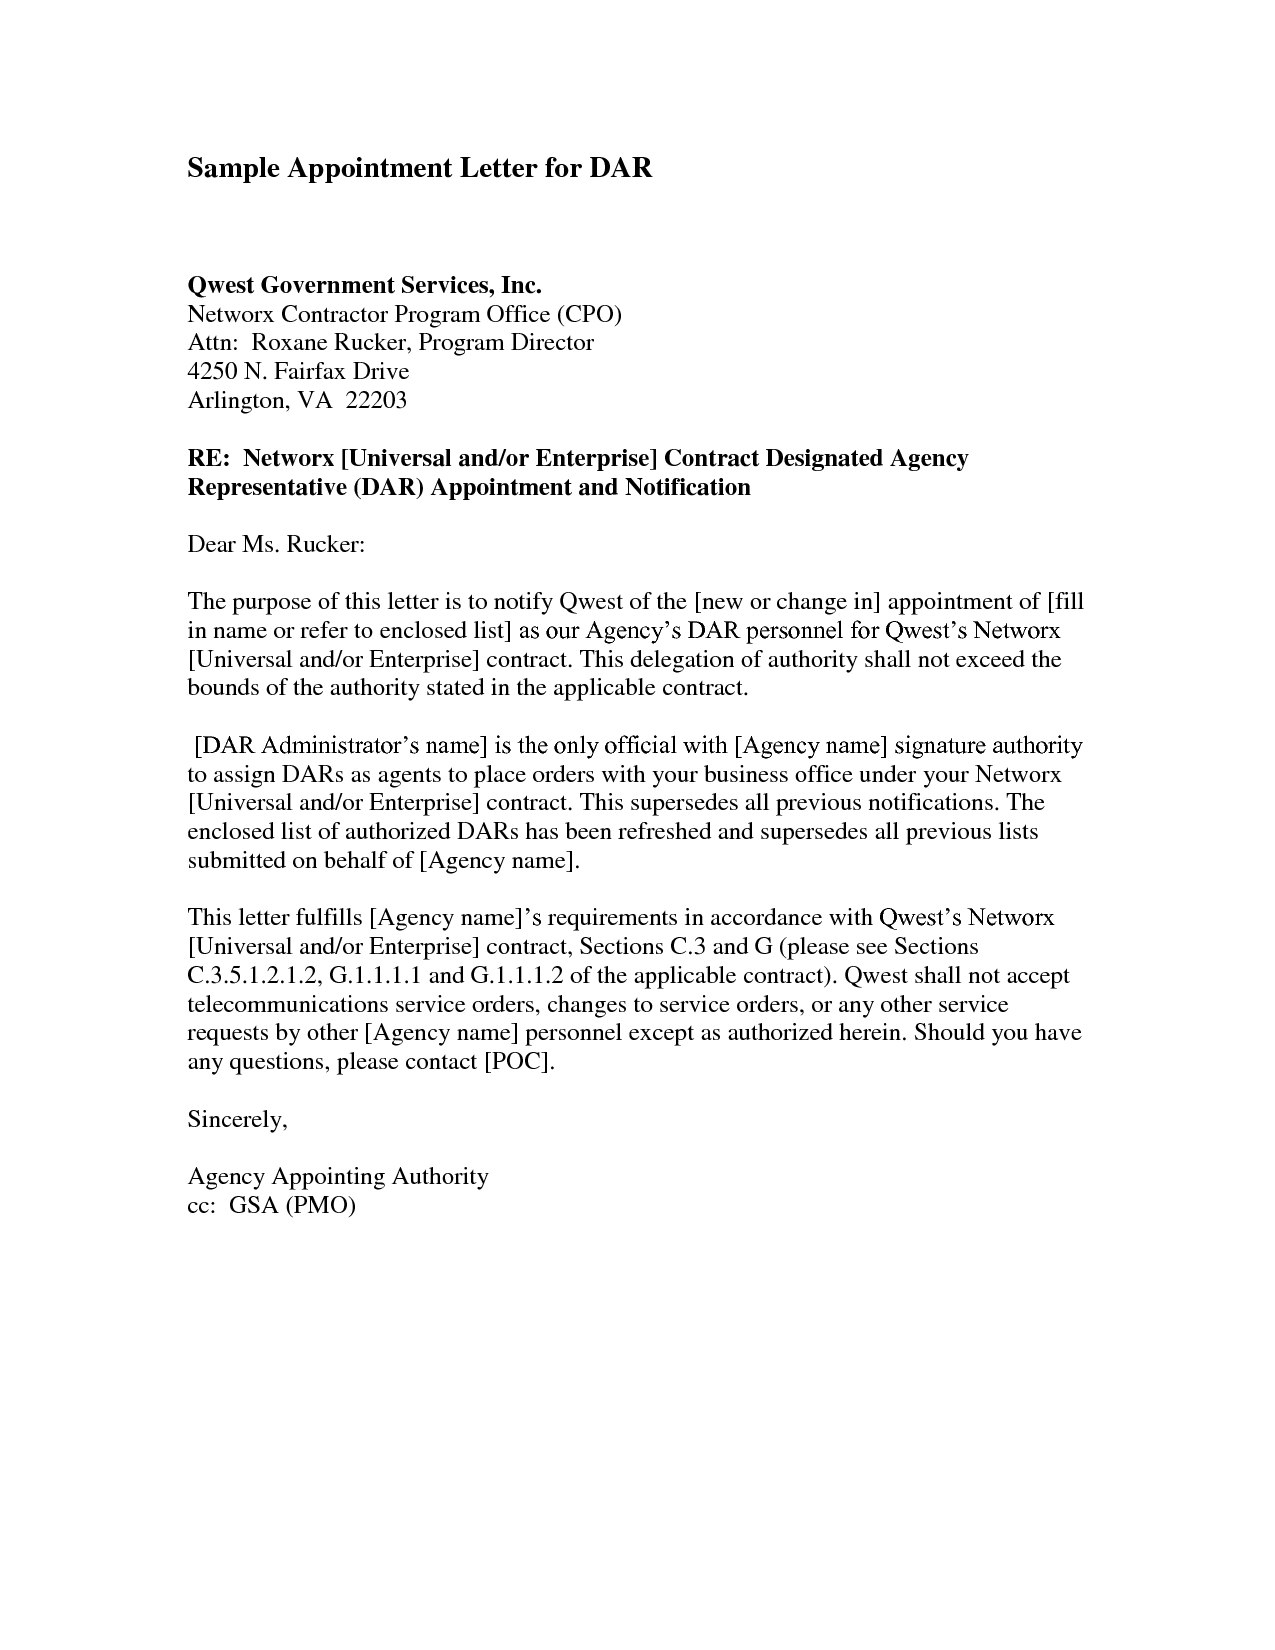 formal offer letter template Collection-Trustee Appointment Letter director trustee is appointed or elected the chair should send a formal letter of appointment setting out what is expected 20-n